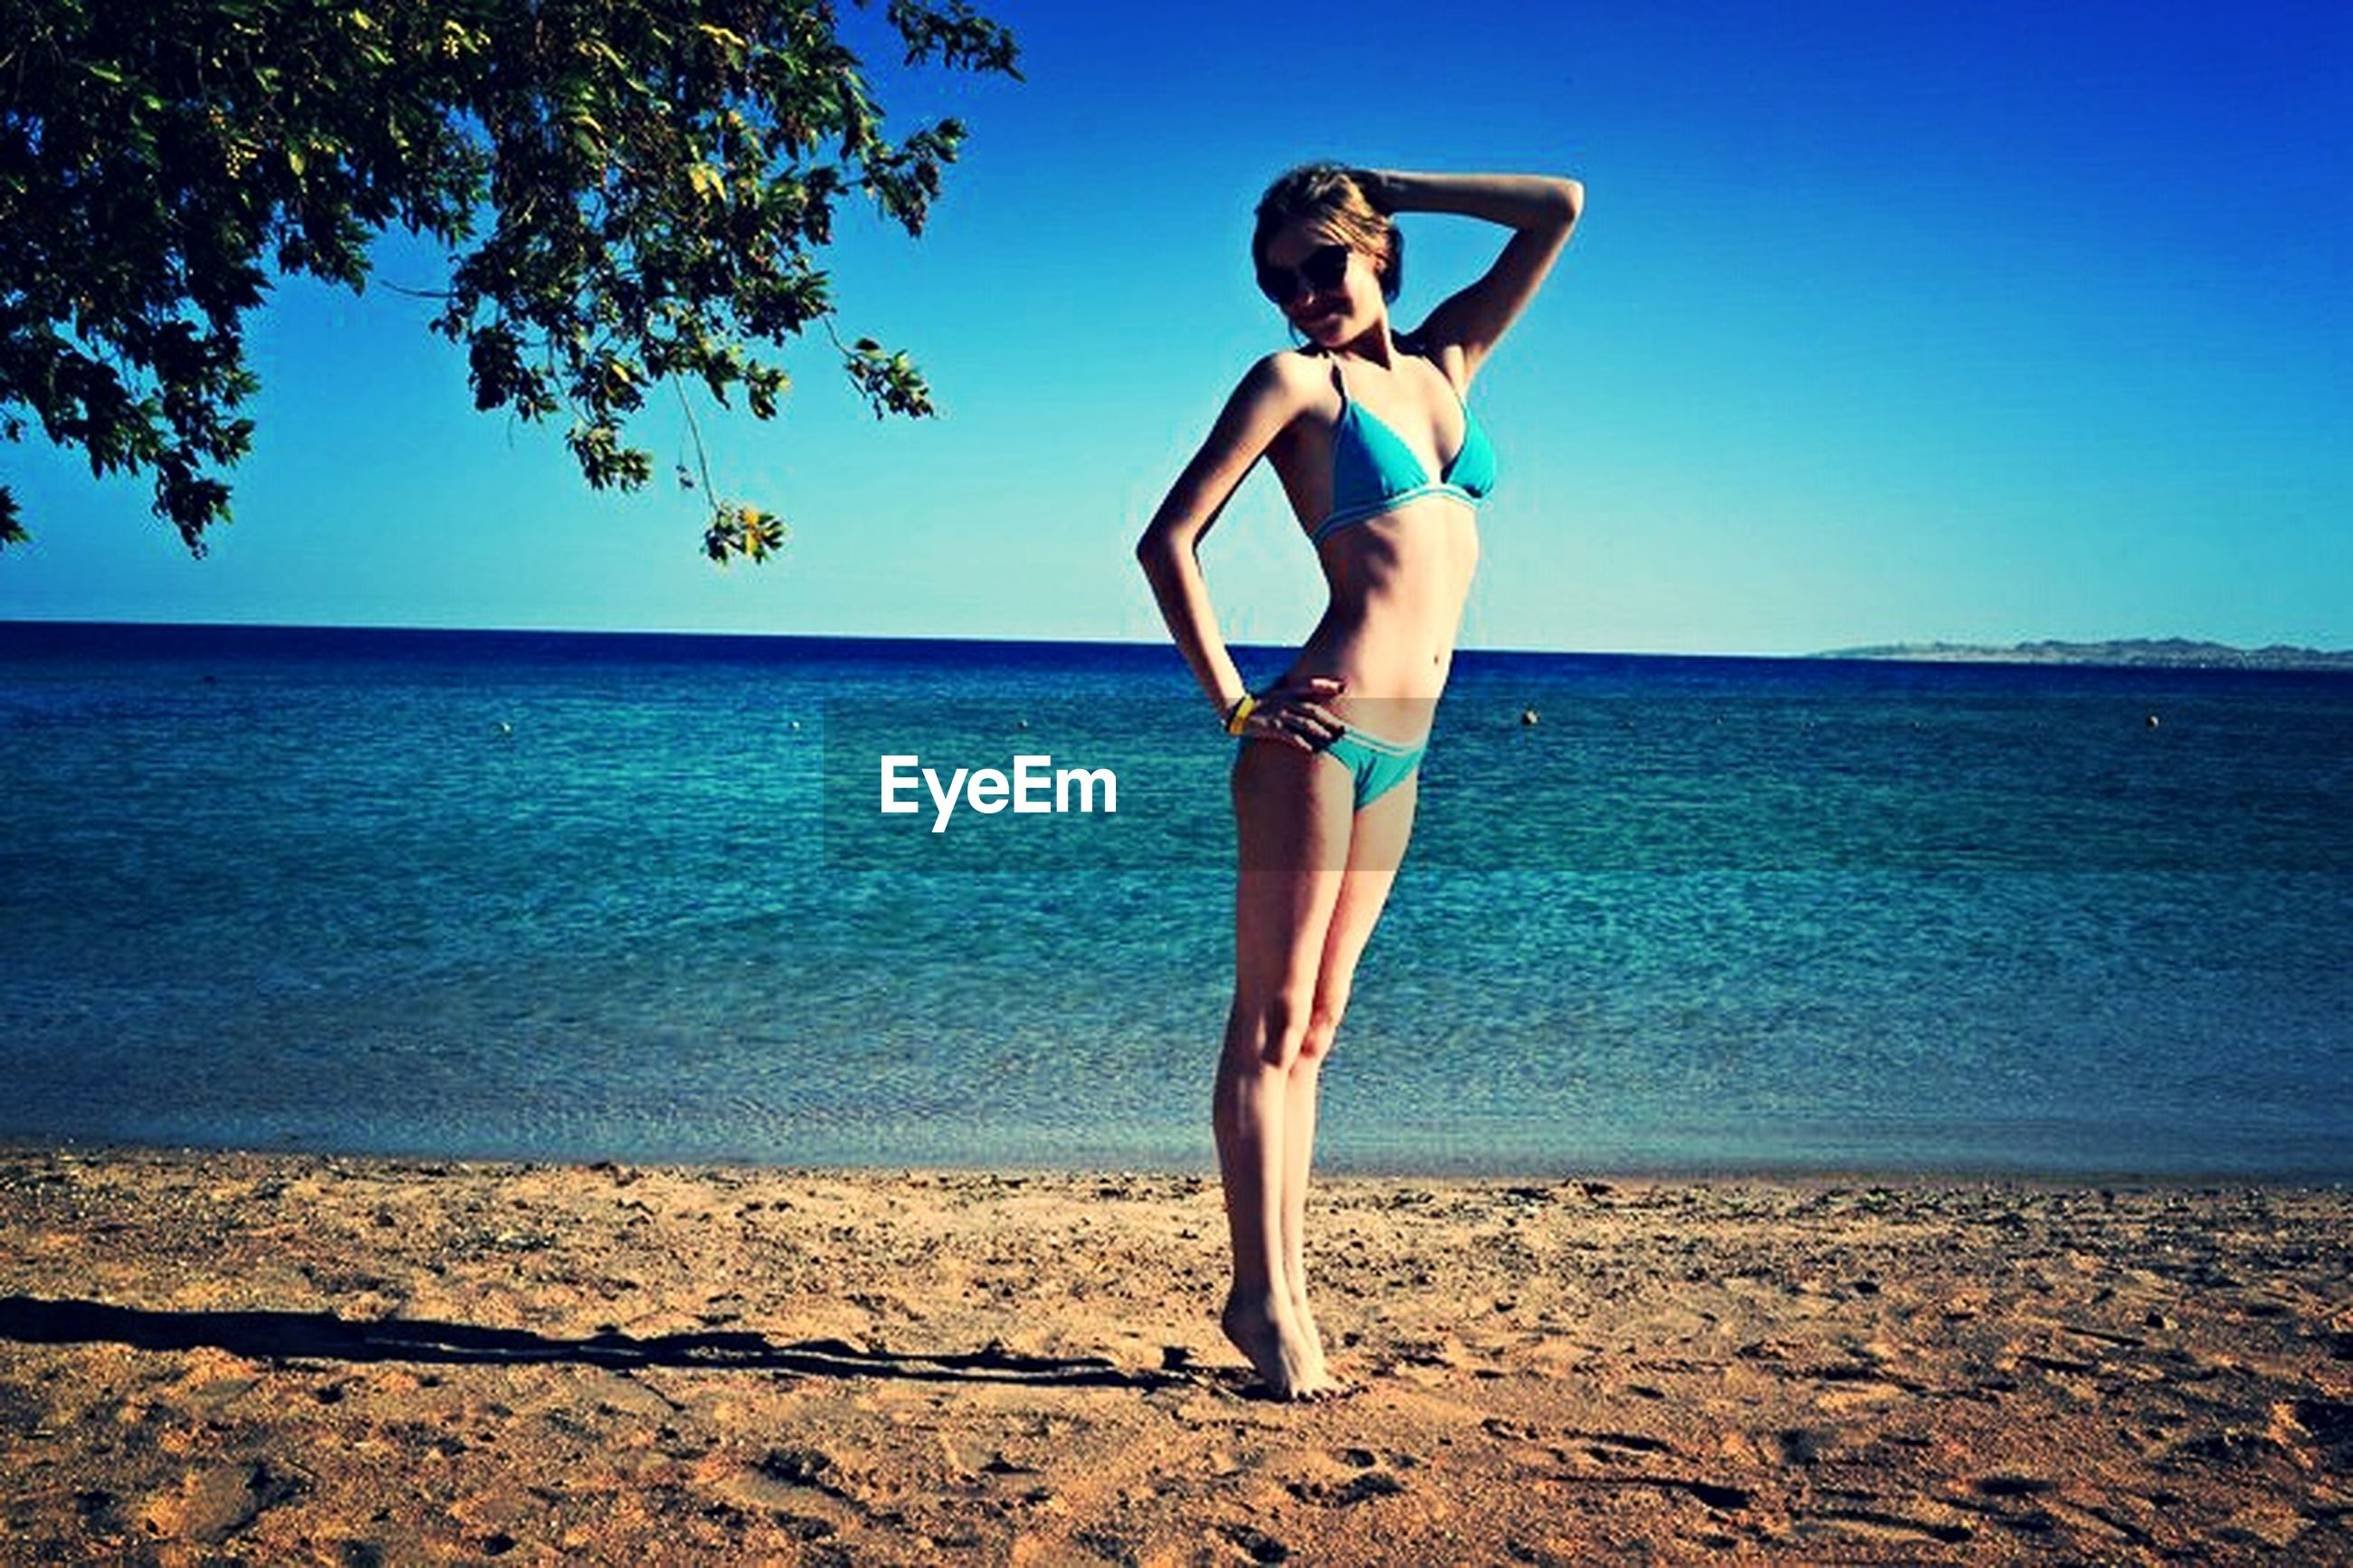 young adult, sea, person, full length, beach, water, lifestyles, leisure activity, shore, horizon over water, sunglasses, casual clothing, young women, portrait, vacations, looking at camera, front view, standing